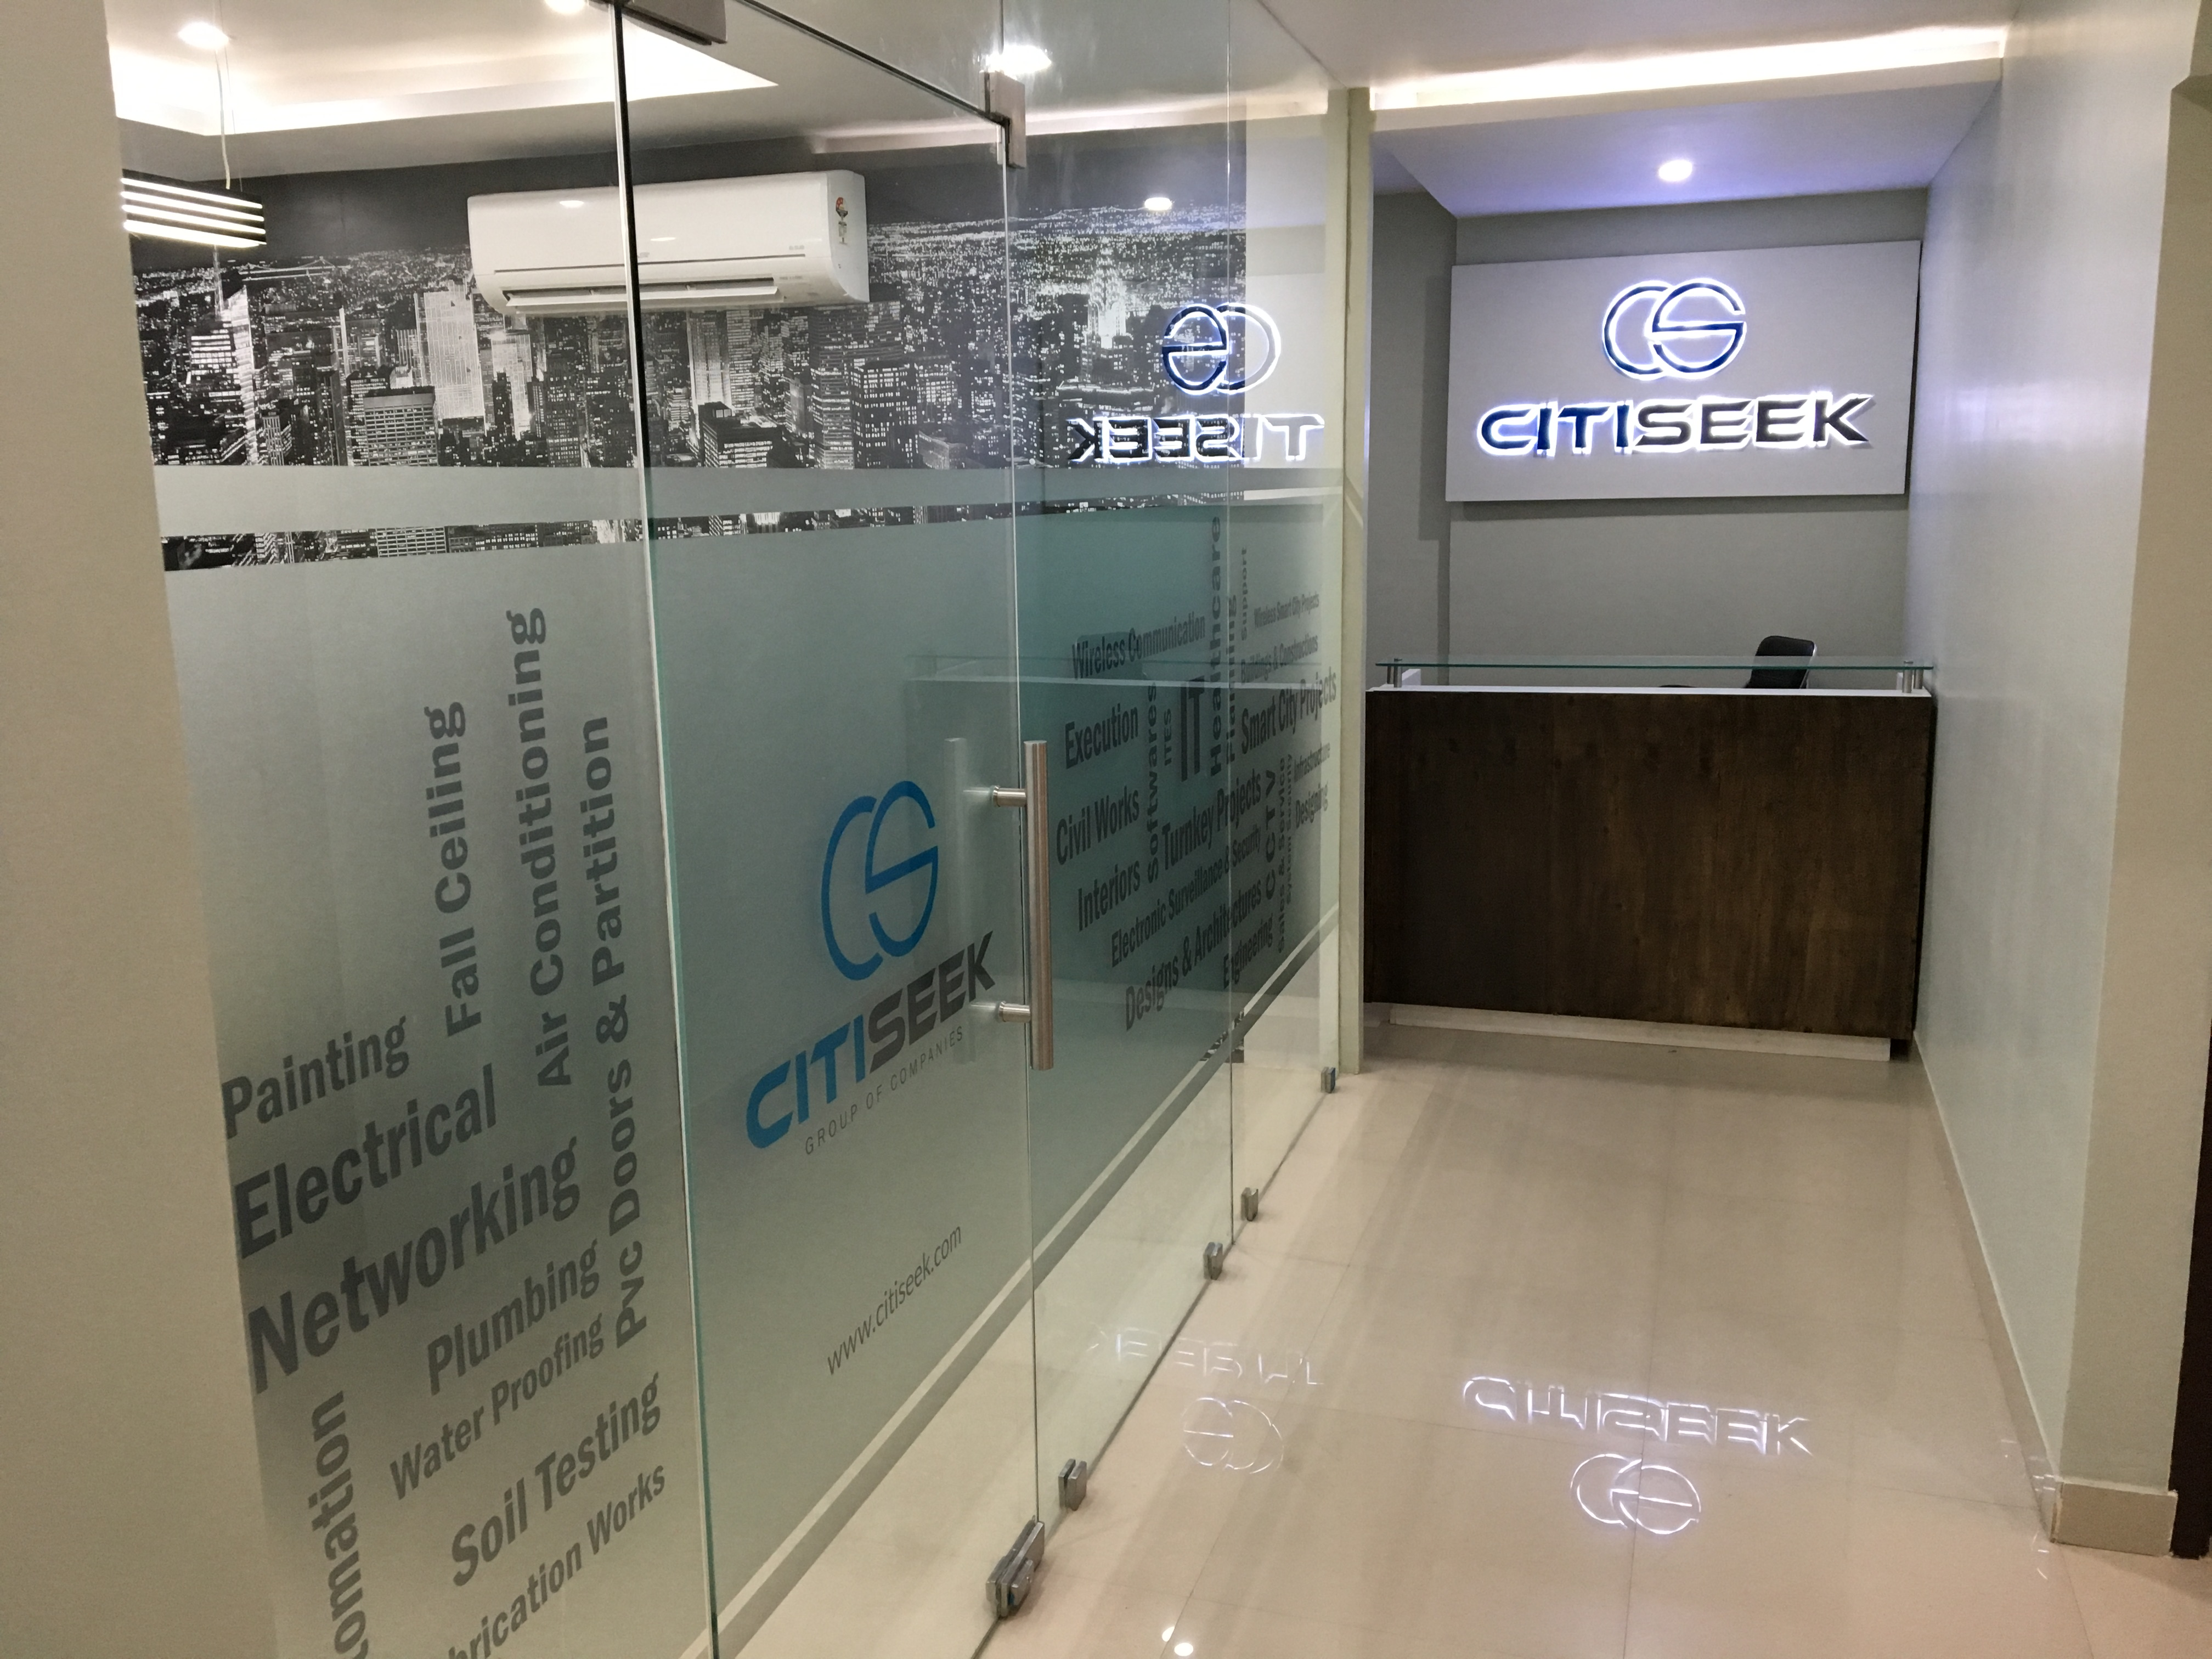 Citiseek It Services Infraventures Electrical Electronics Engineering Systems Mechanical Electronic Subcontract Design Photos